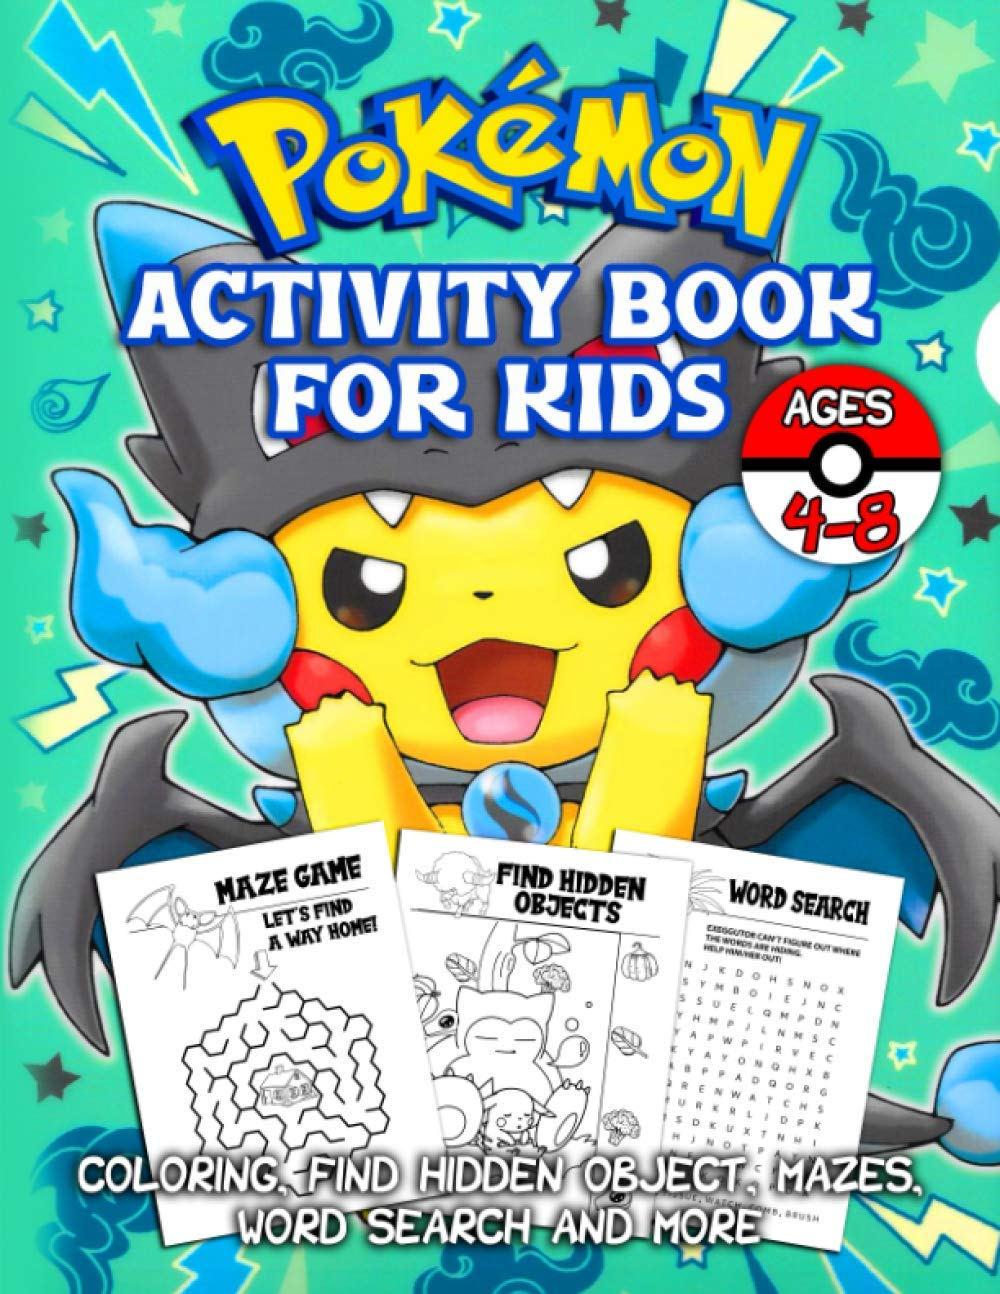 Pokemon Activity Book For Kids Ages 4-8: The Book Features Lots Of Cool Phone-Free Games With Lots Of Pokemon Illustrations